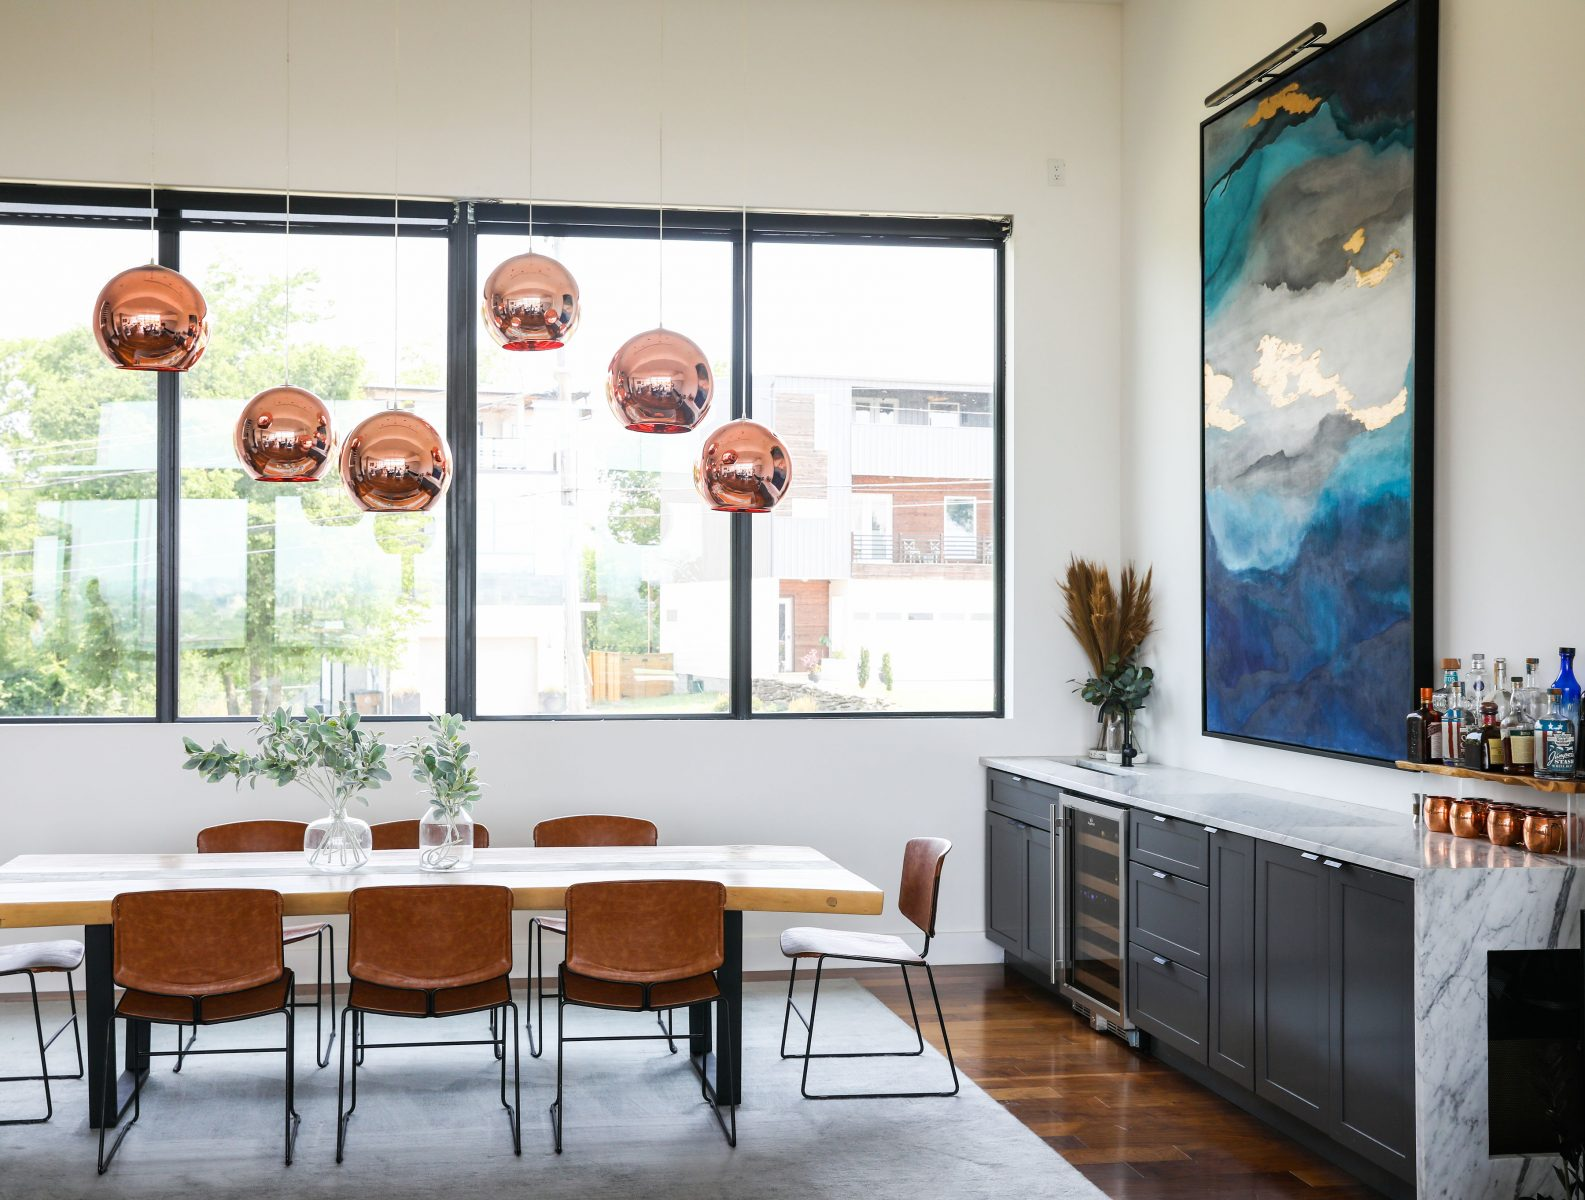 brooke and brice gilliam making modern magnolia network simple modern house wooden dinning room table blue artwork bar in dinning room neutral tones